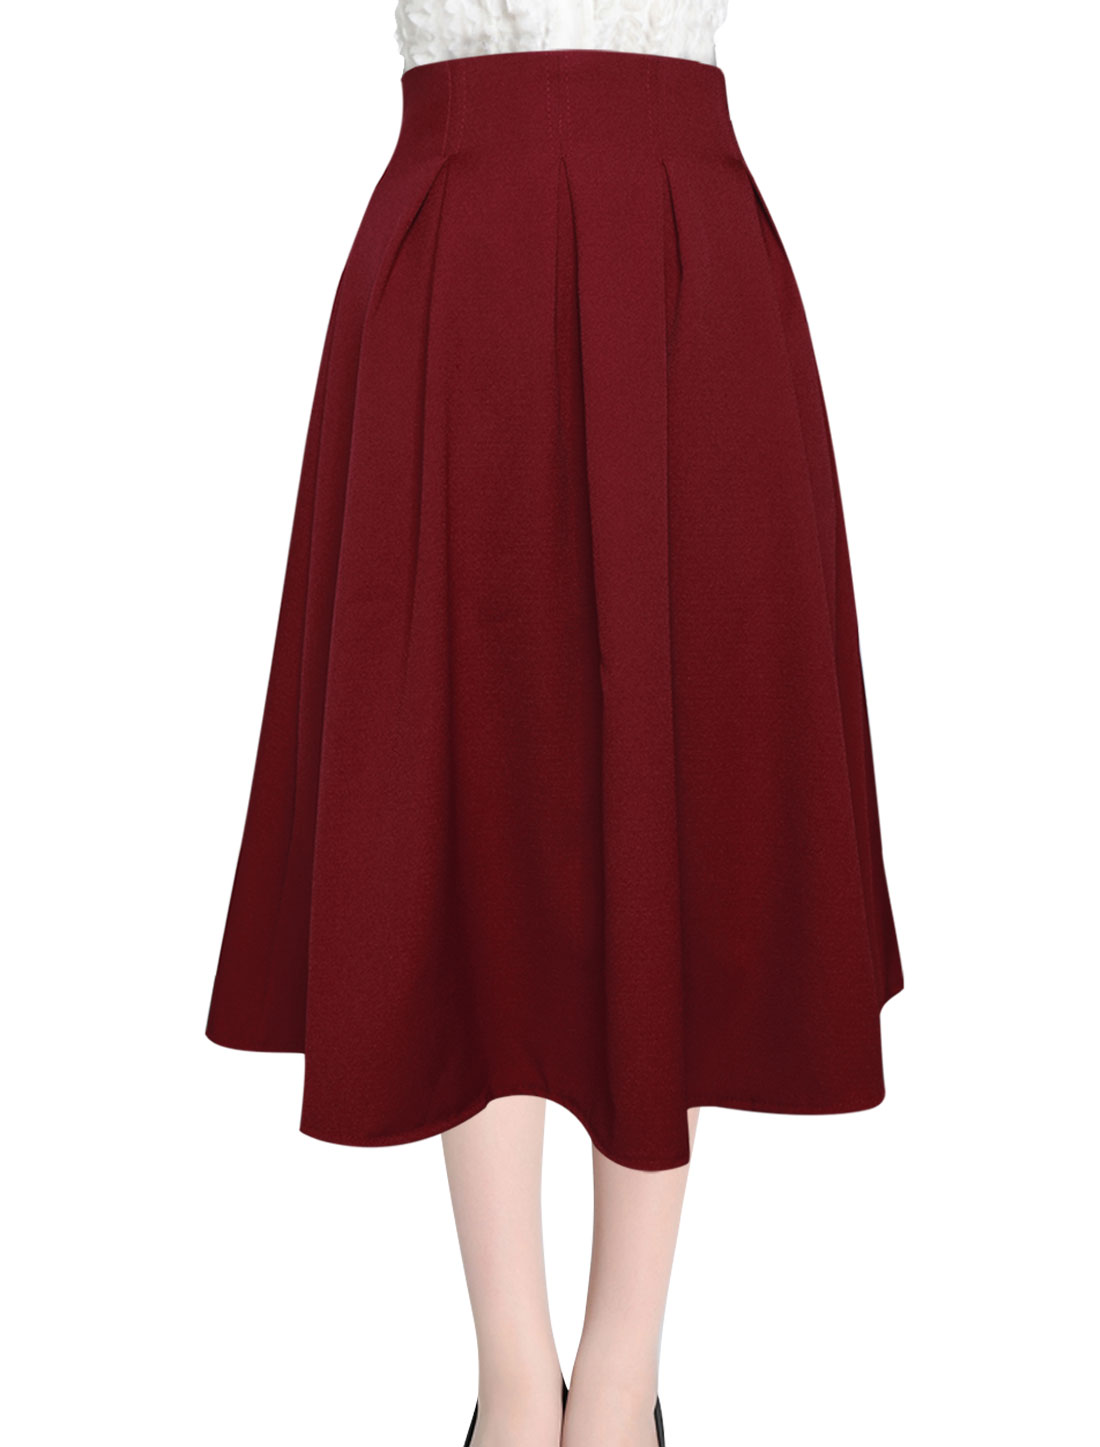 Ladies High Wasit Half Lined Fashion Full Skirt Burgundy M